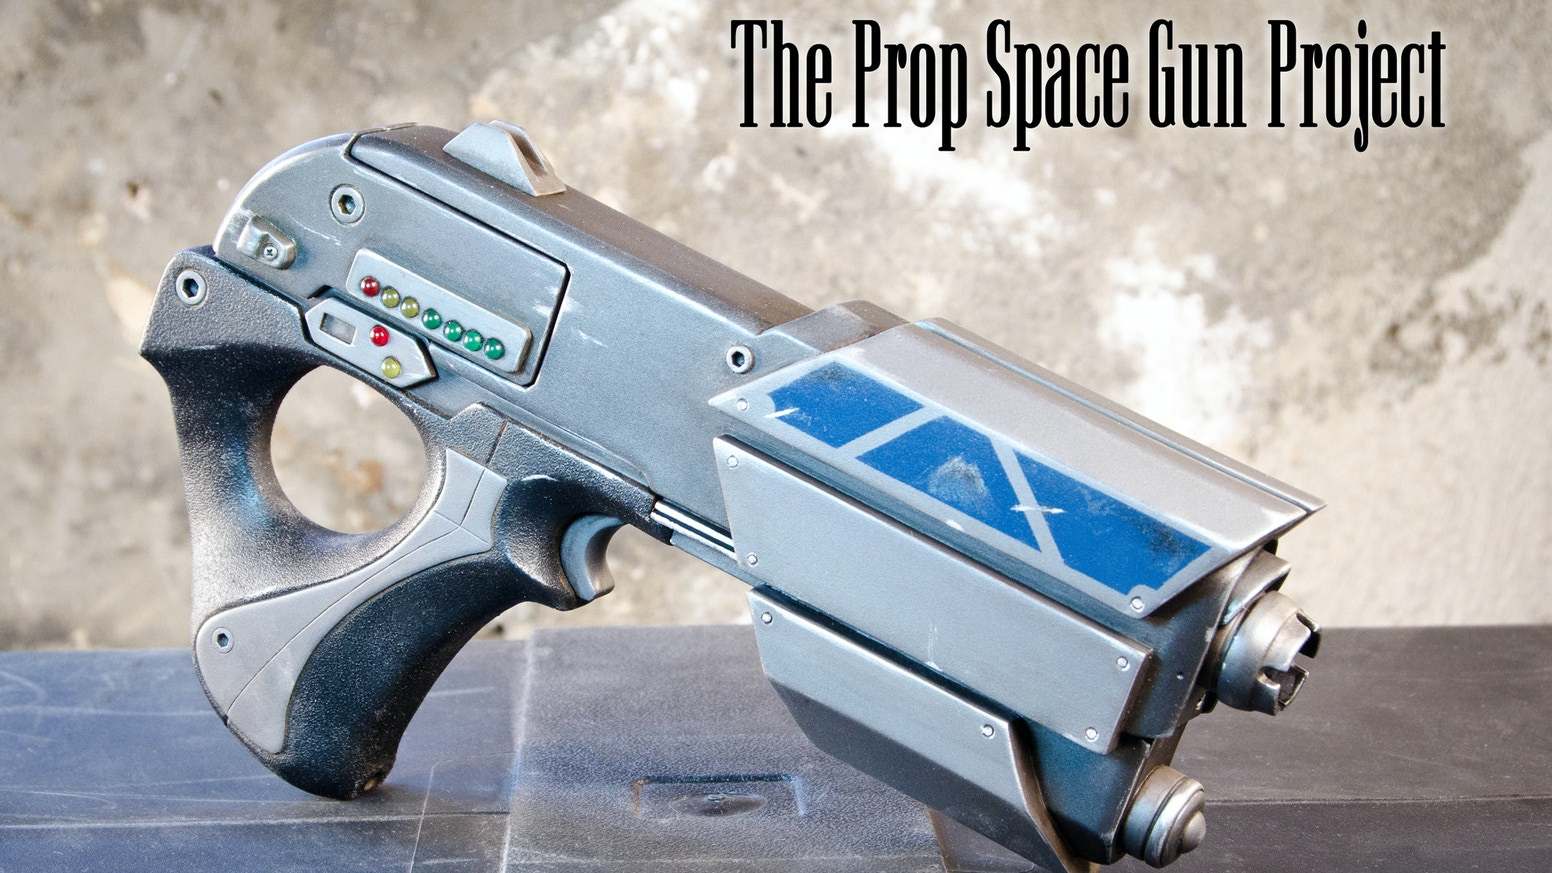 The prop space gun project by bill doran kickstarter a completely new original design from prop maker bill doran created for diy makers costumers and collectors alike solutioingenieria Image collections